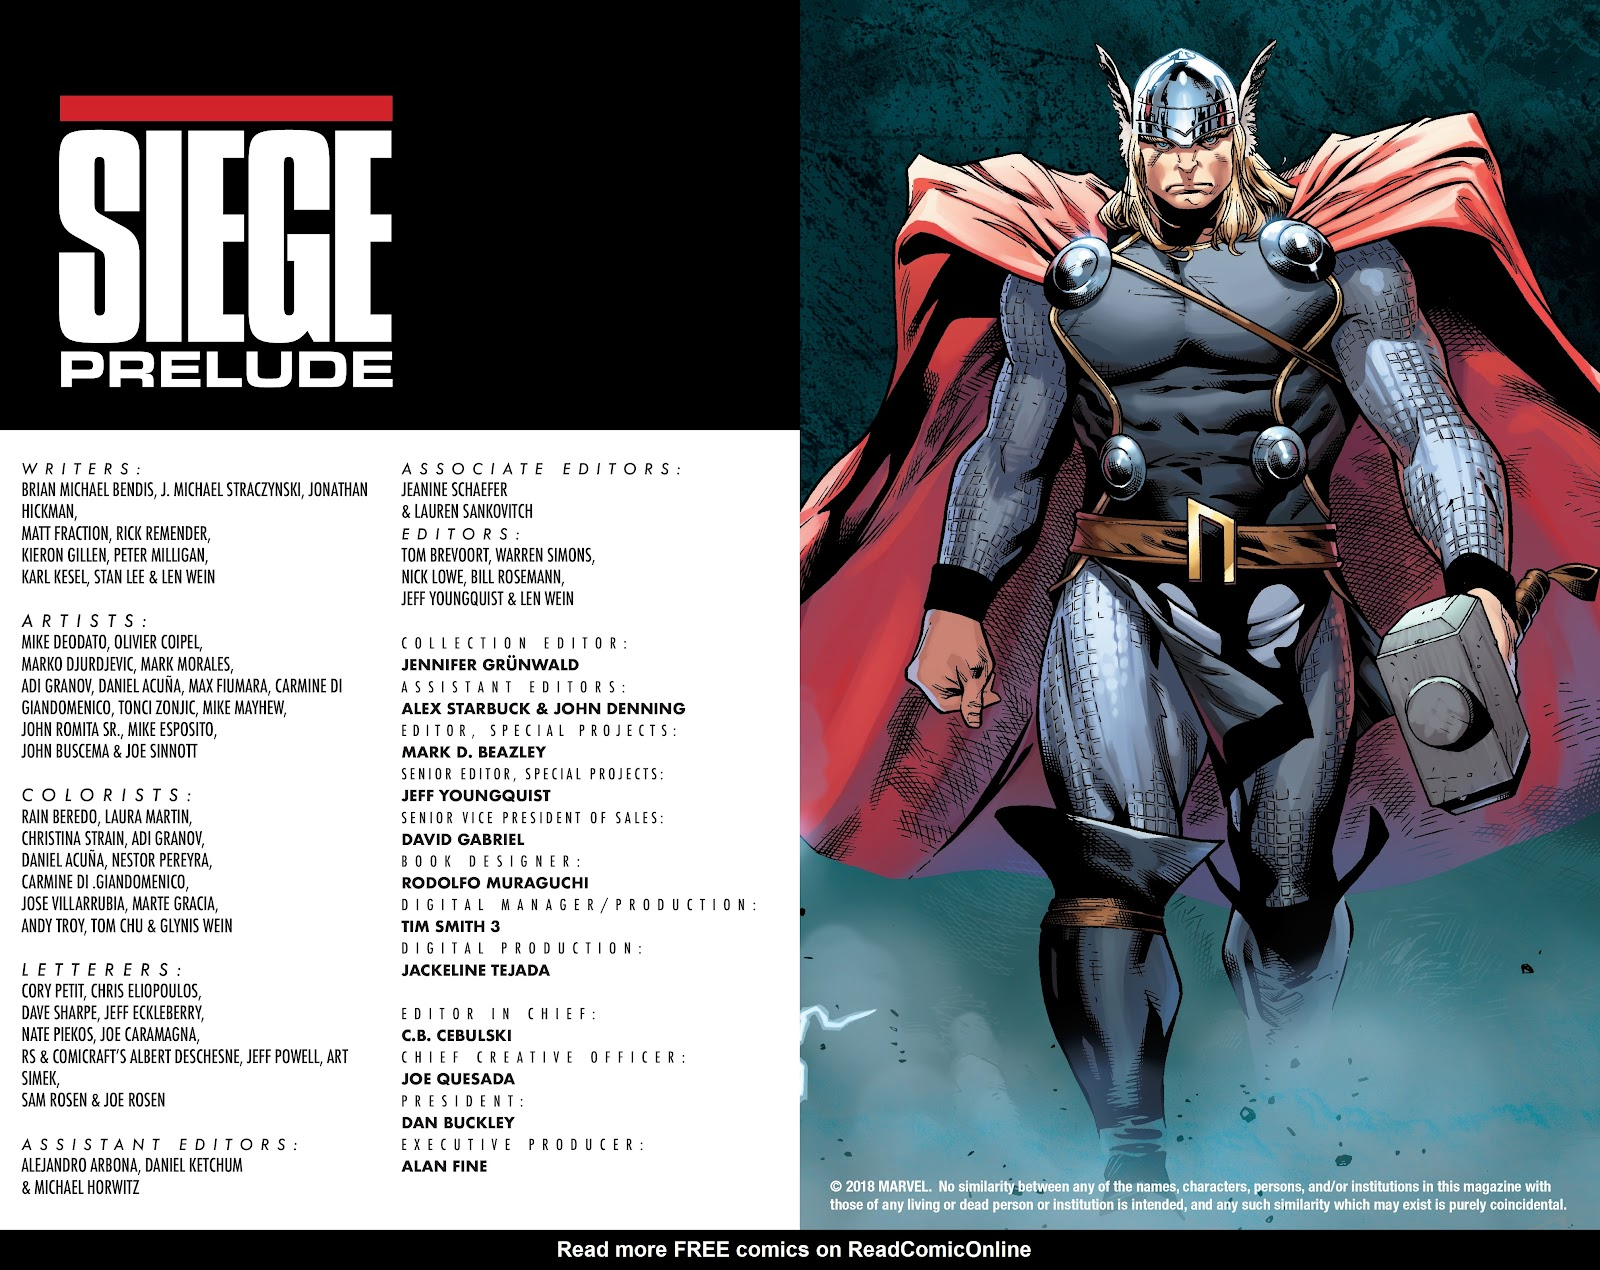 Read online Siege Prelude comic -  Issue # TPB (Part 1) - 3